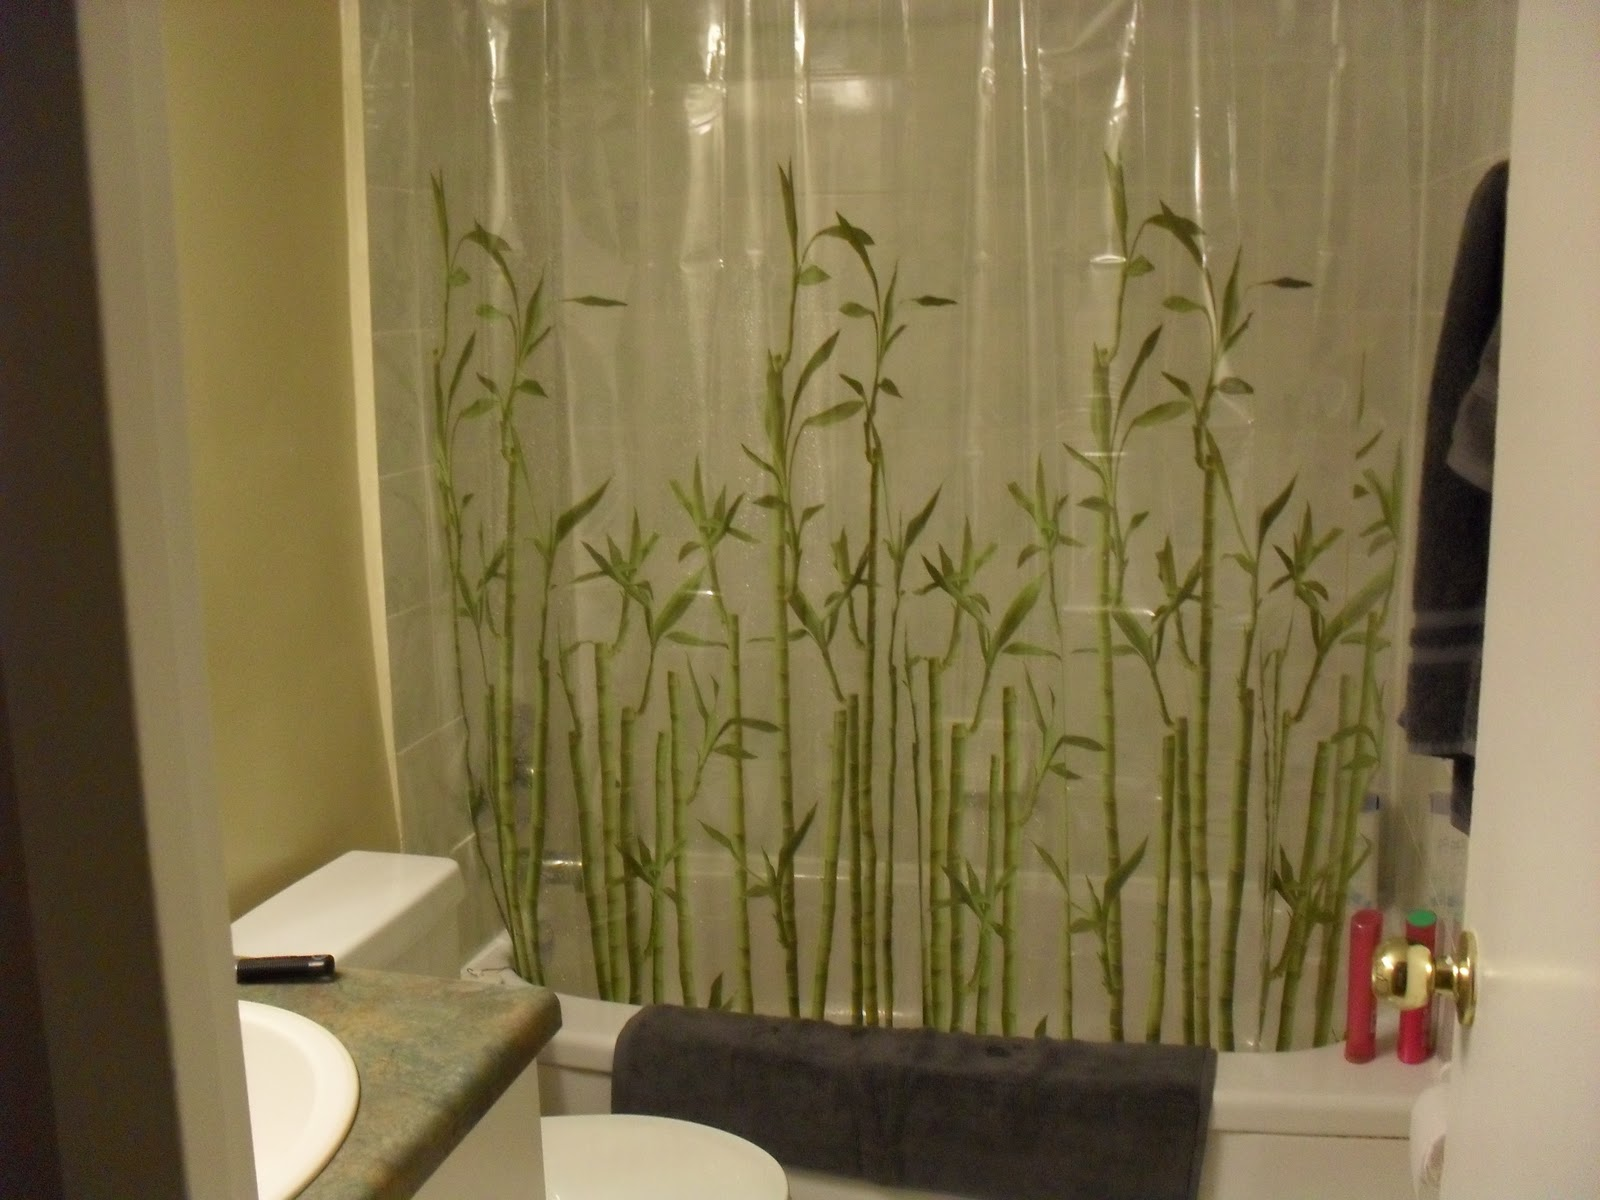 Bamboo shower curtain - The Bathroom Looks Pretty Much The Same Tacky Bamboo Shower Curtain And All The Only Problem Is That The Shower Curtain Tries To Attack Me While I M